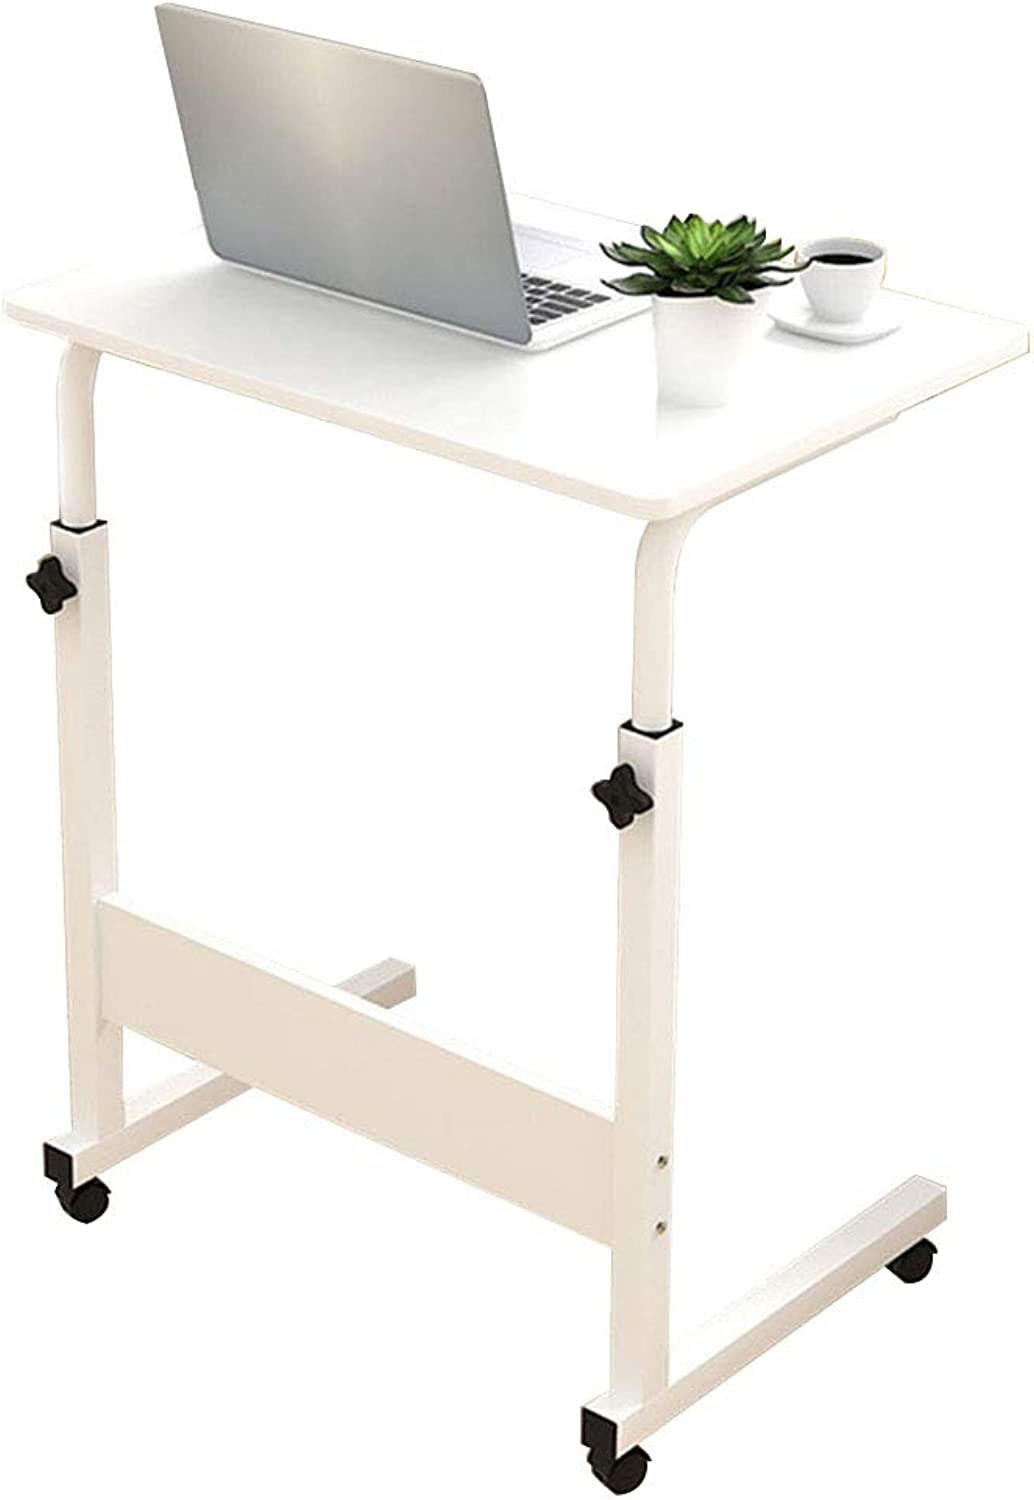 Coffee Table Simple Movable Lifting Stand up Desk, Multifunction Bedside Table Student Dormitory Lazy Computer Desk, 2 Sizes (Size   60  40 cm)